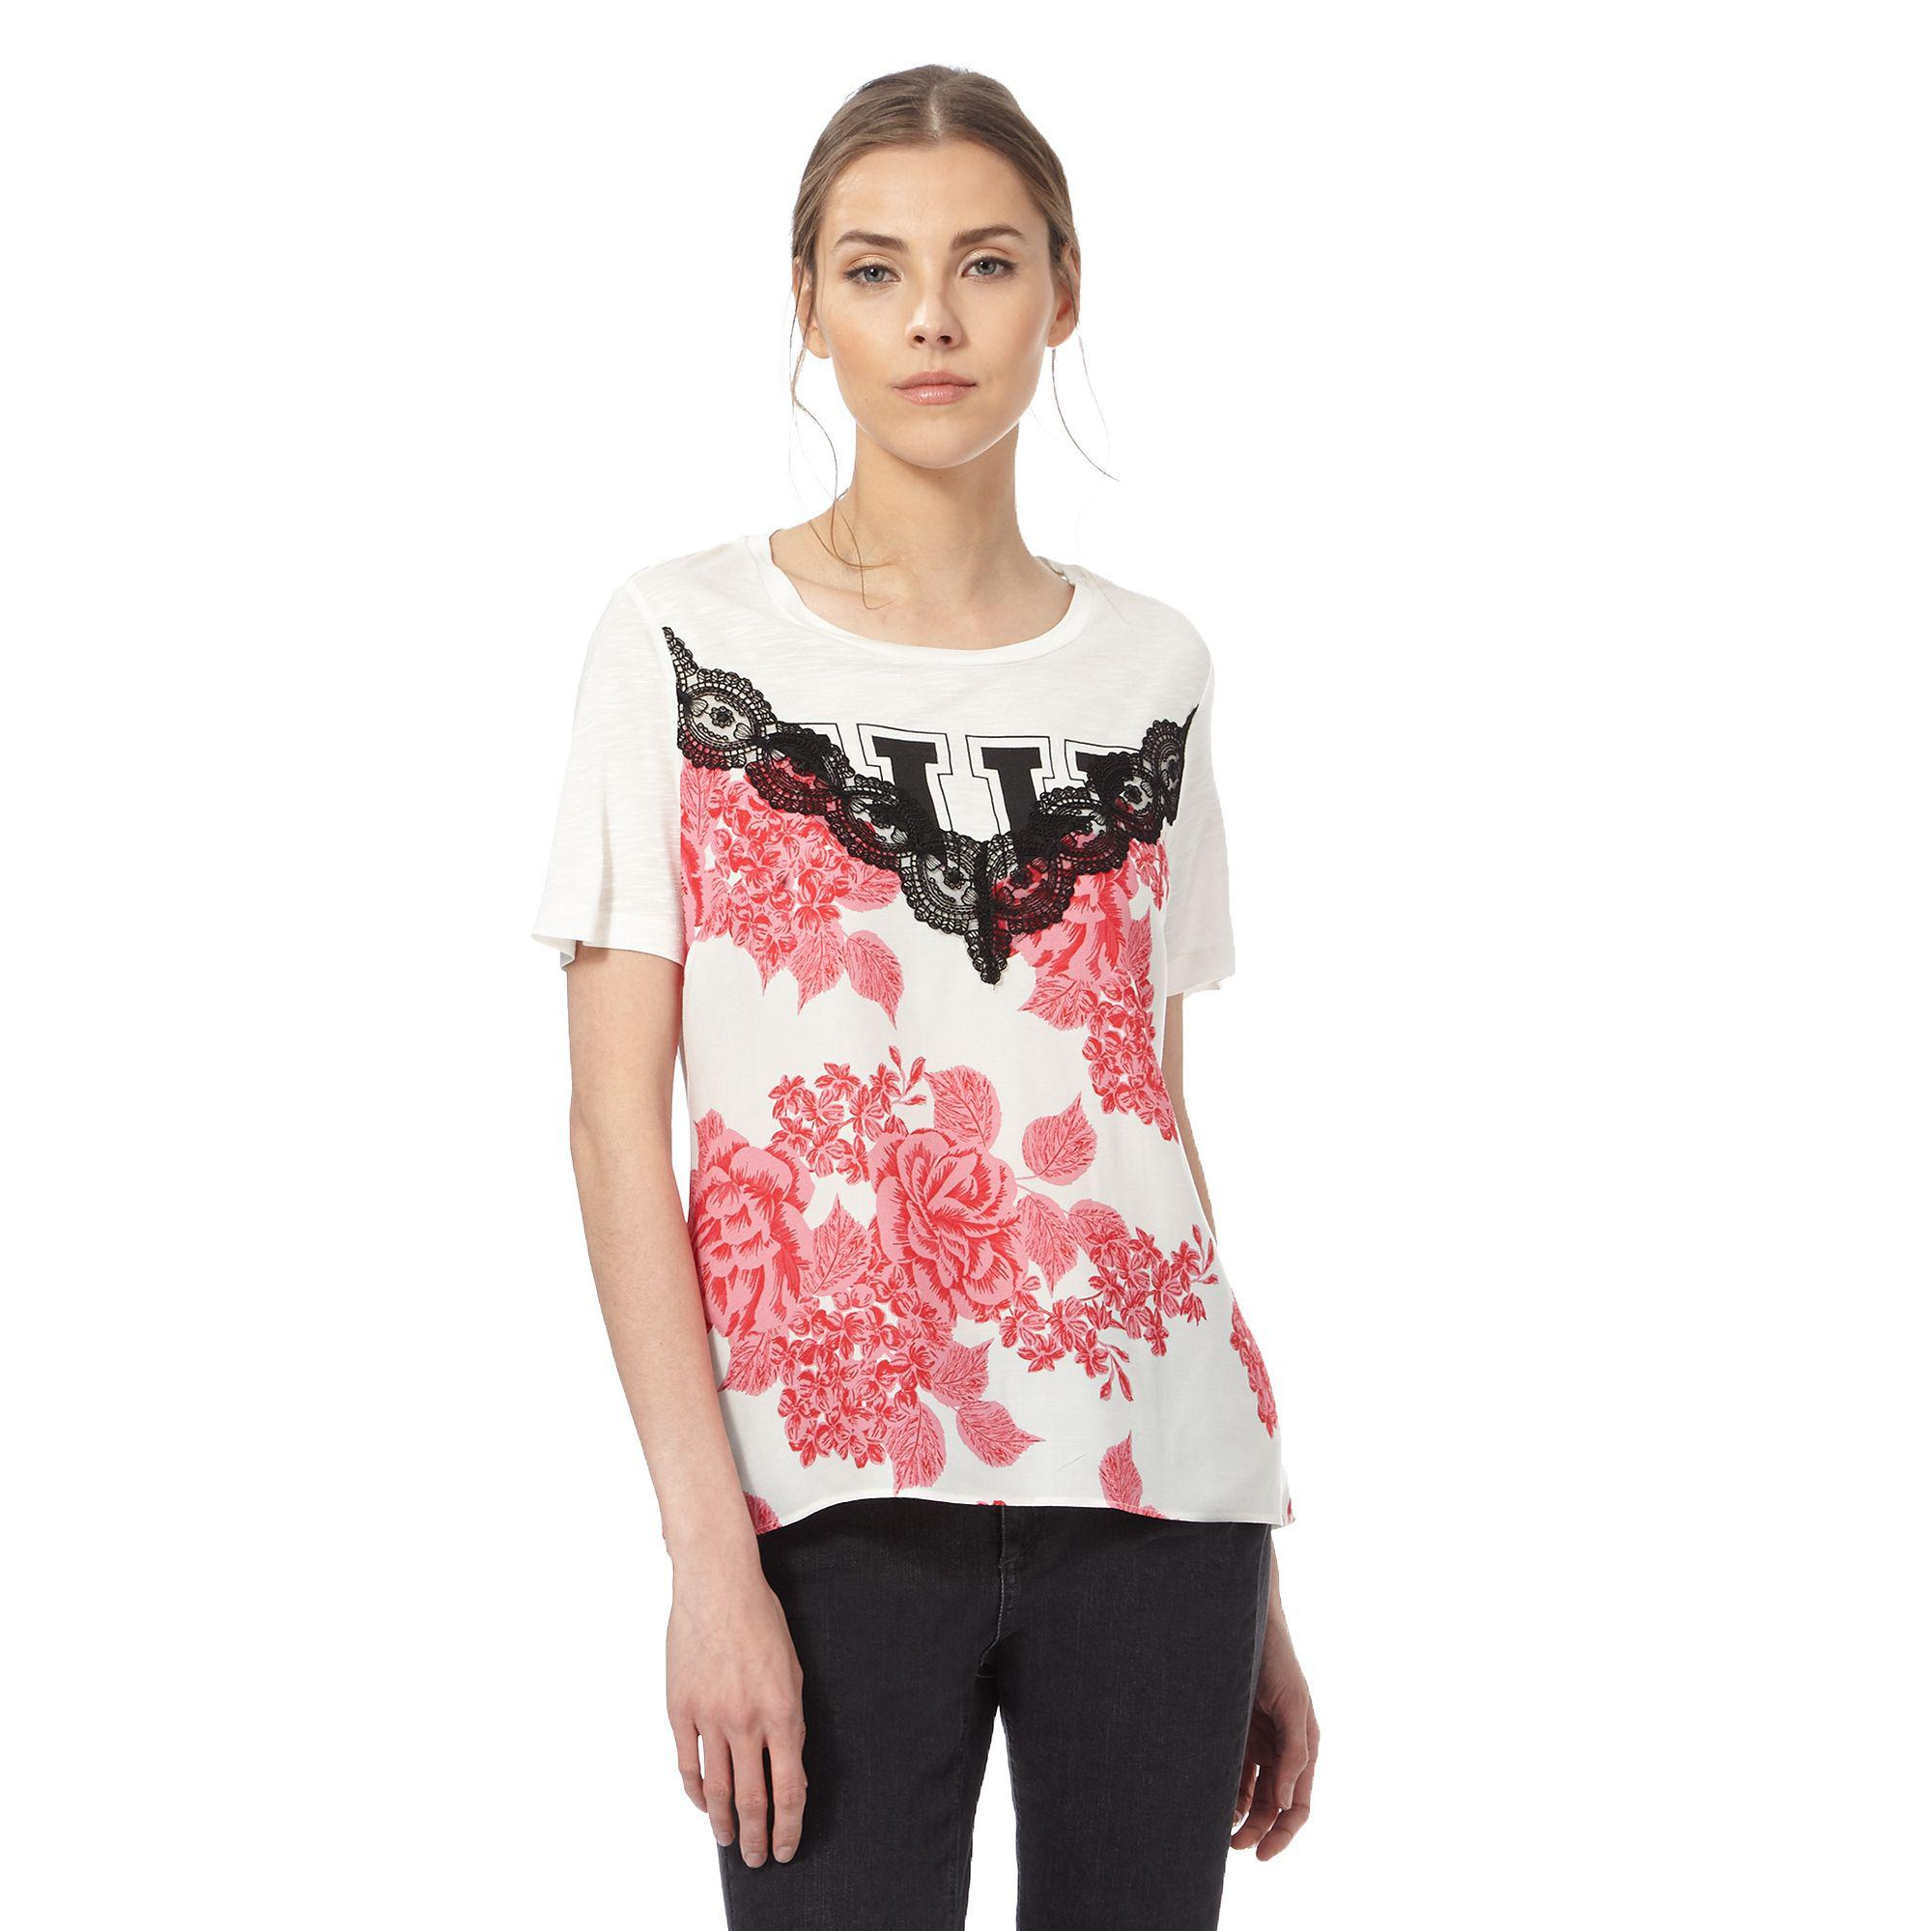 Of Holland Lace White In House Print Floral Lyst Top dQxrCtsh